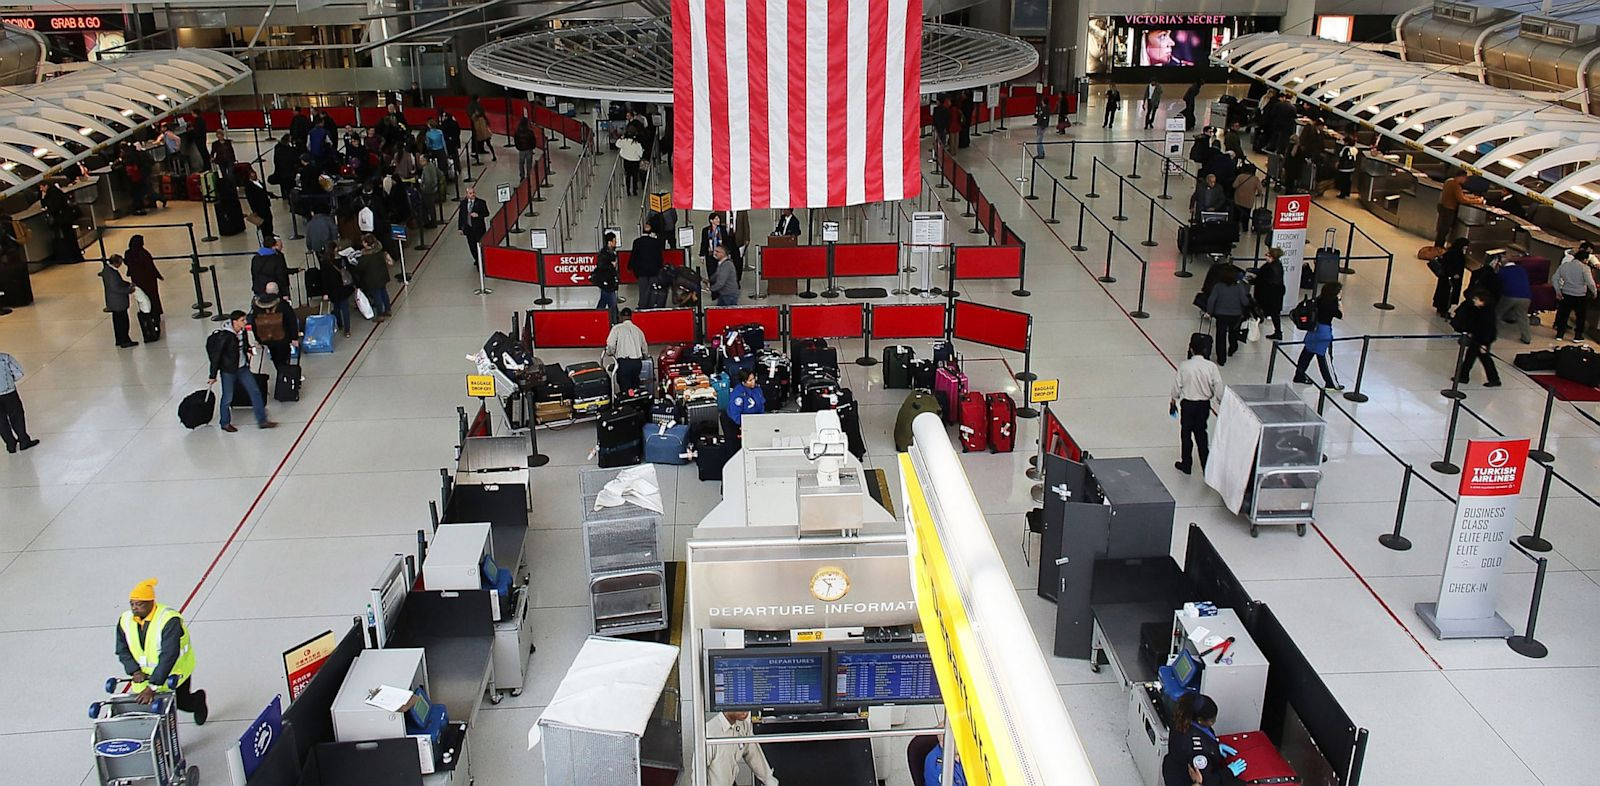 PHOTO: TSA, security, airplane, JFK, airport